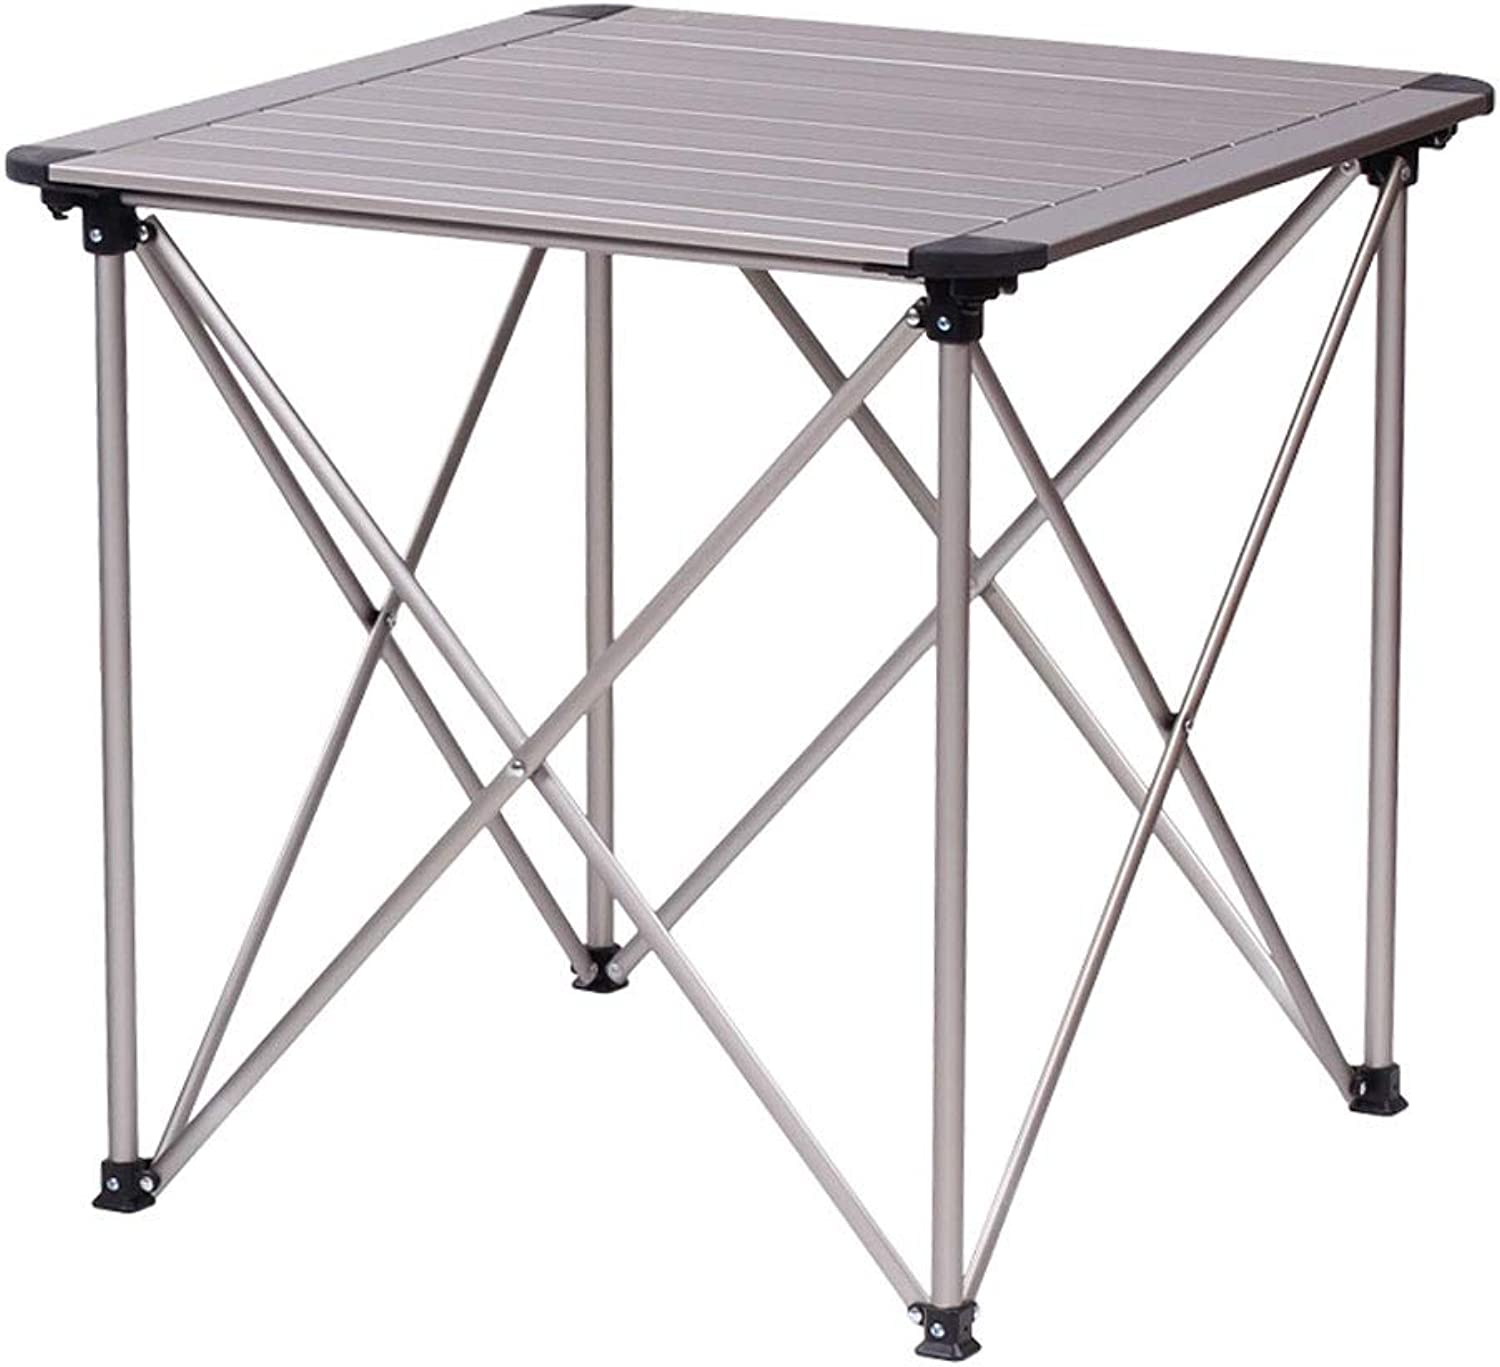 ZA Outdoor Portable Aluminum Alloy Folding Table, Lightweight Camping Table with Storage Bag, Foldable Desk for Picnic Party Dining Camp BBQ Fishing